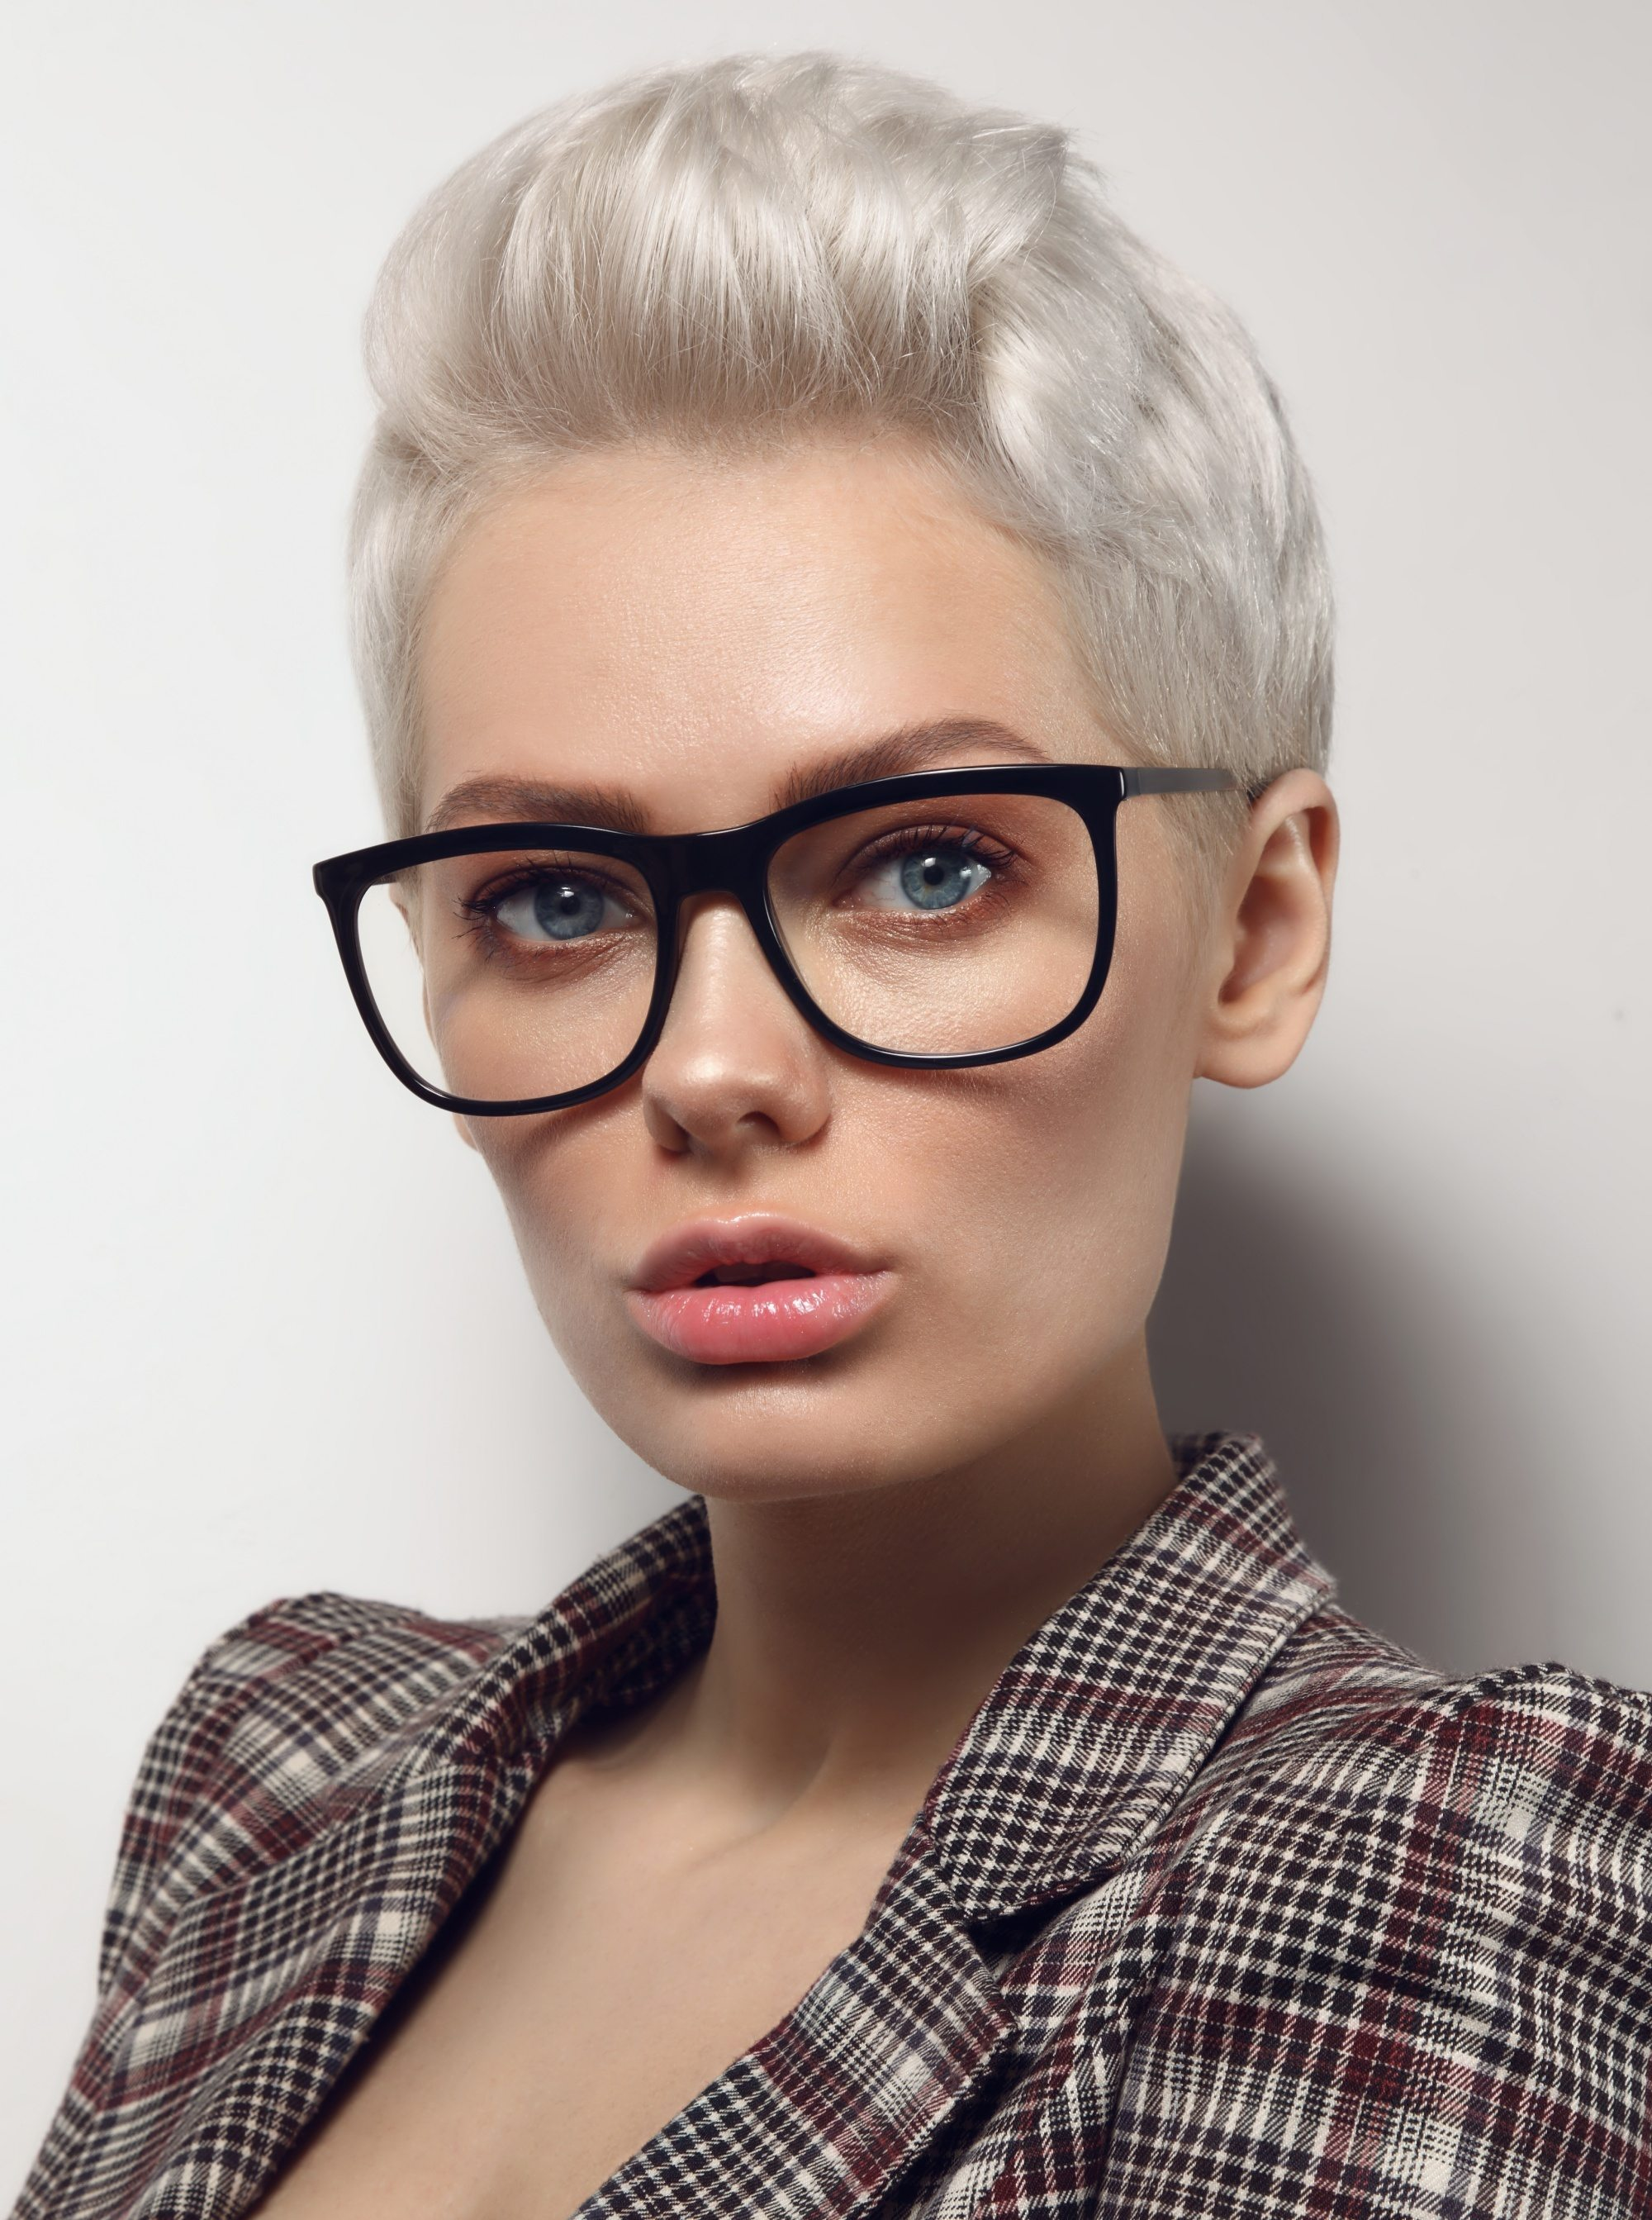 Woman with platinum blonde pixie cut wearing eyeglasses